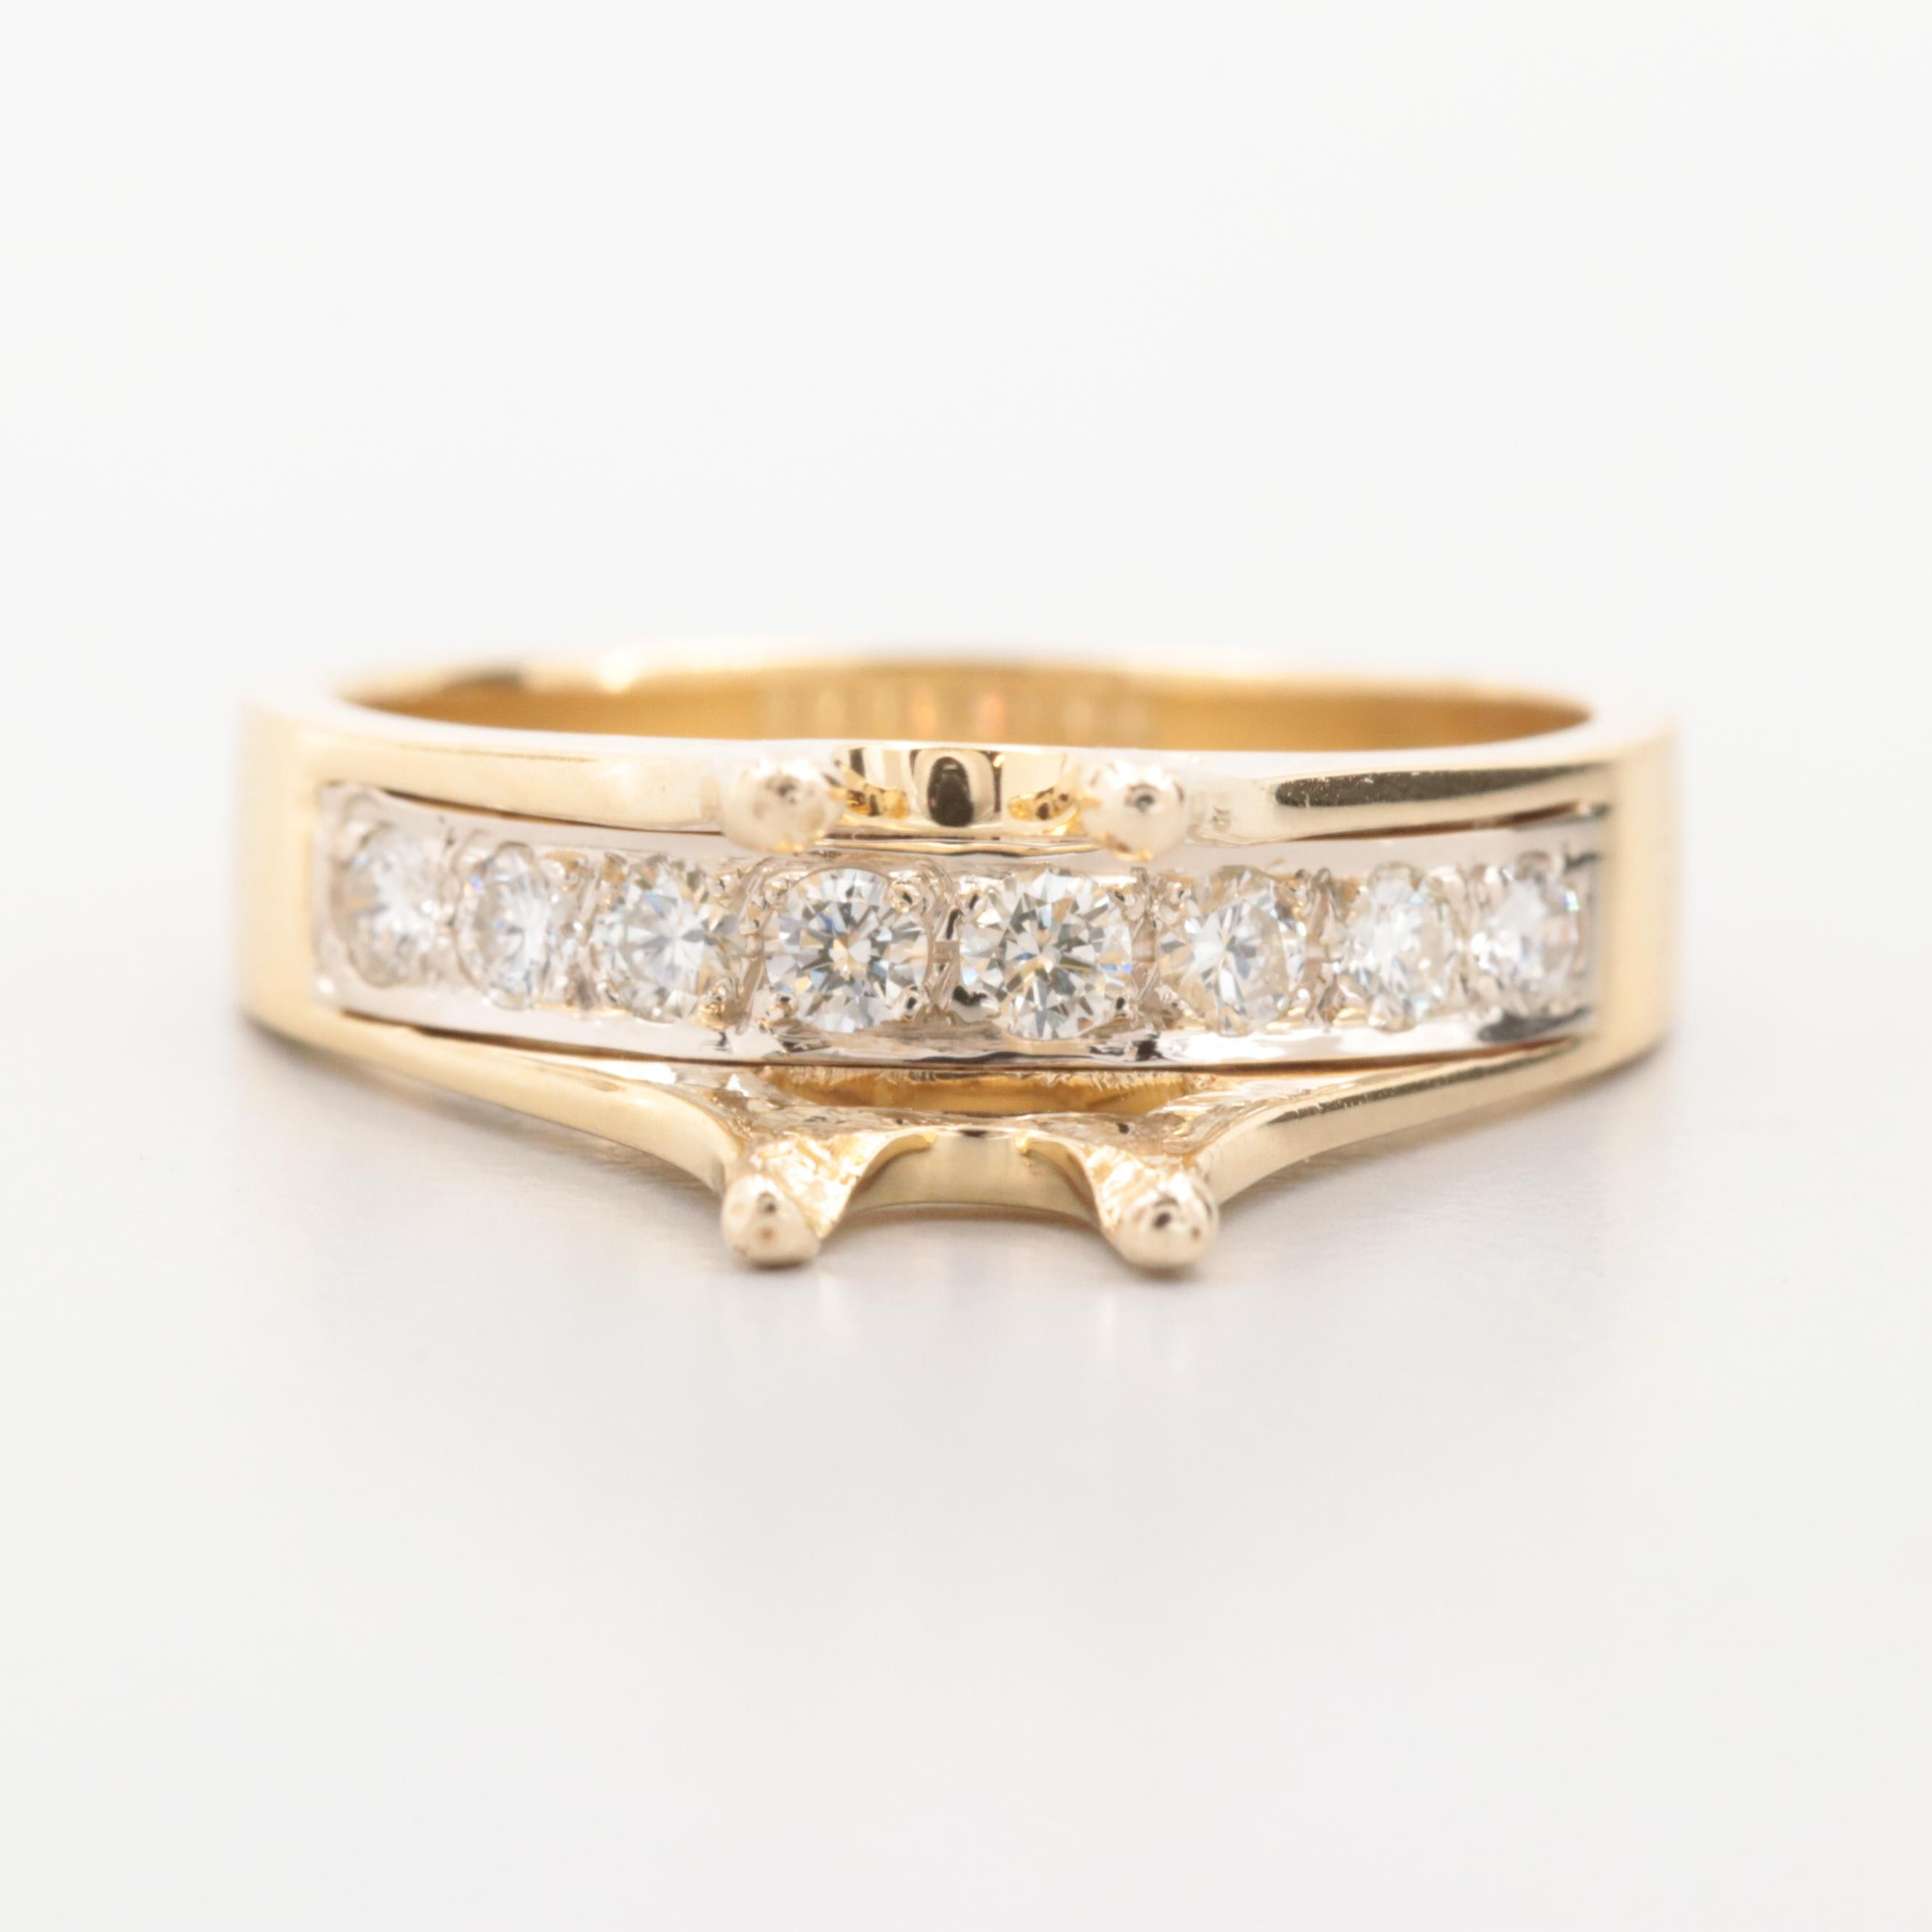 18K Yellow Gold Diamond Ring with 14K Yellow Gold Semi Mount